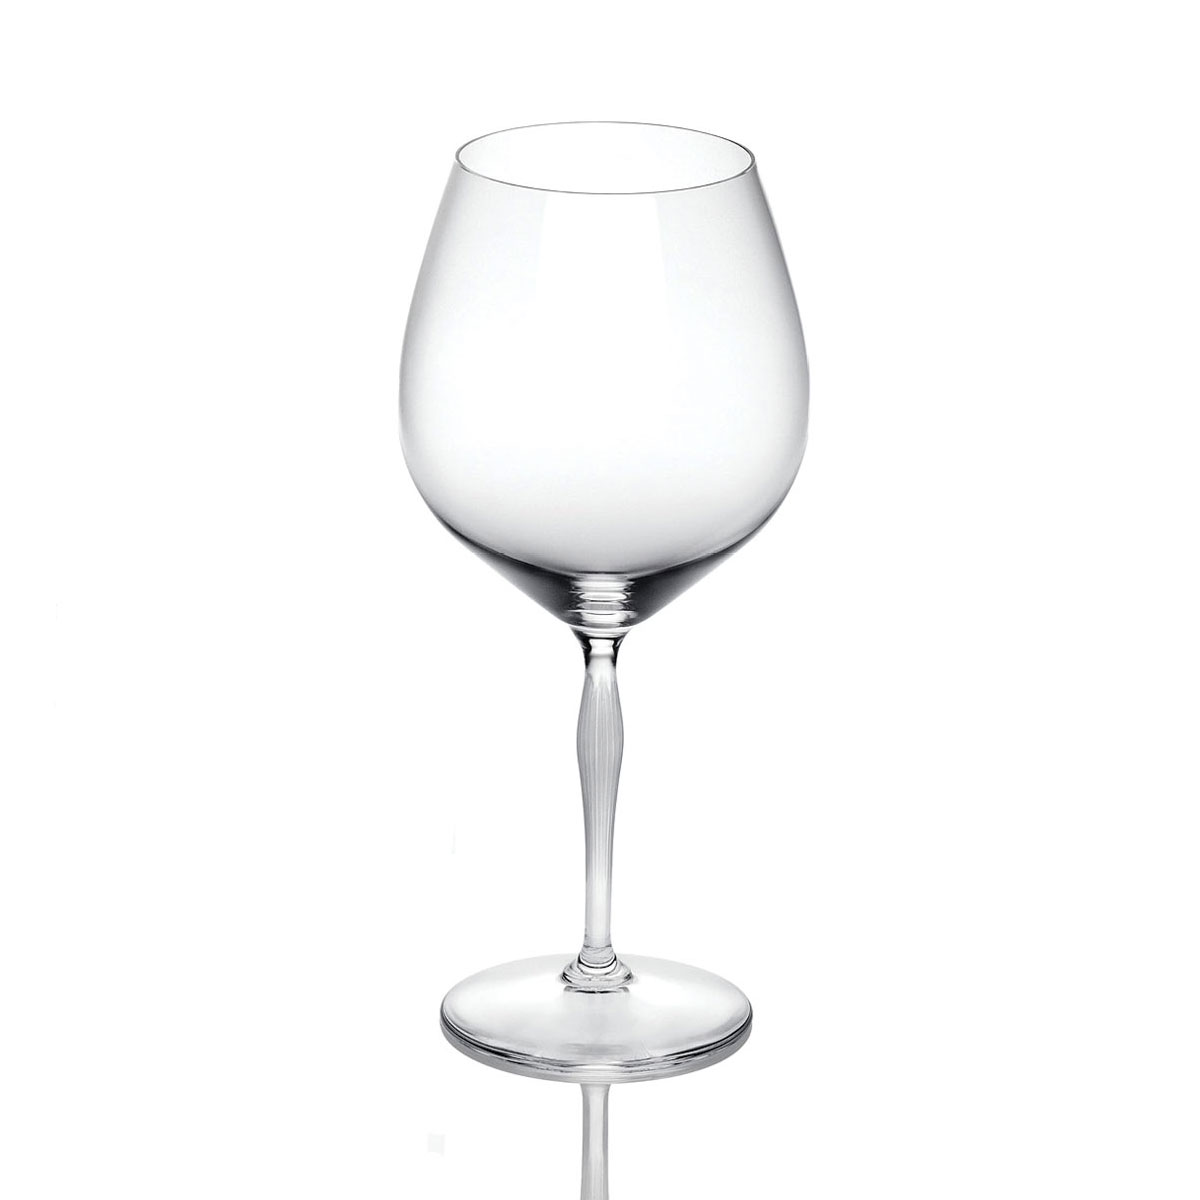 Lalique Crystal, 100 Points Burgundy Glass By James Suckling, Single